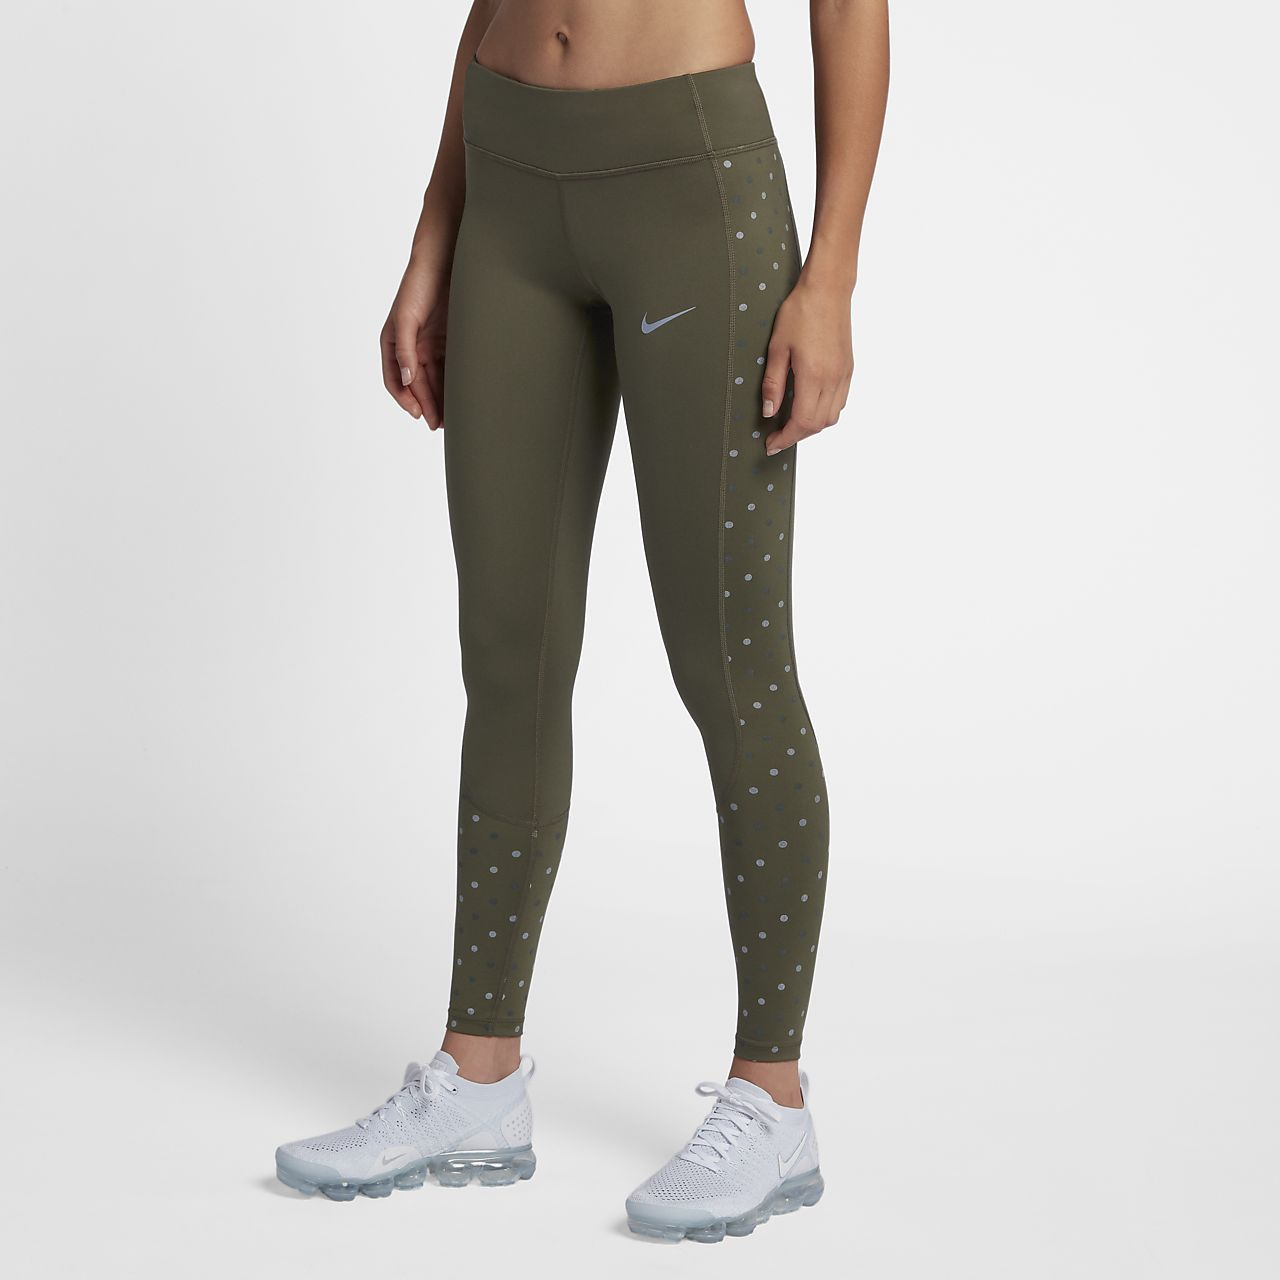 Nike Racer Women's Running Tights